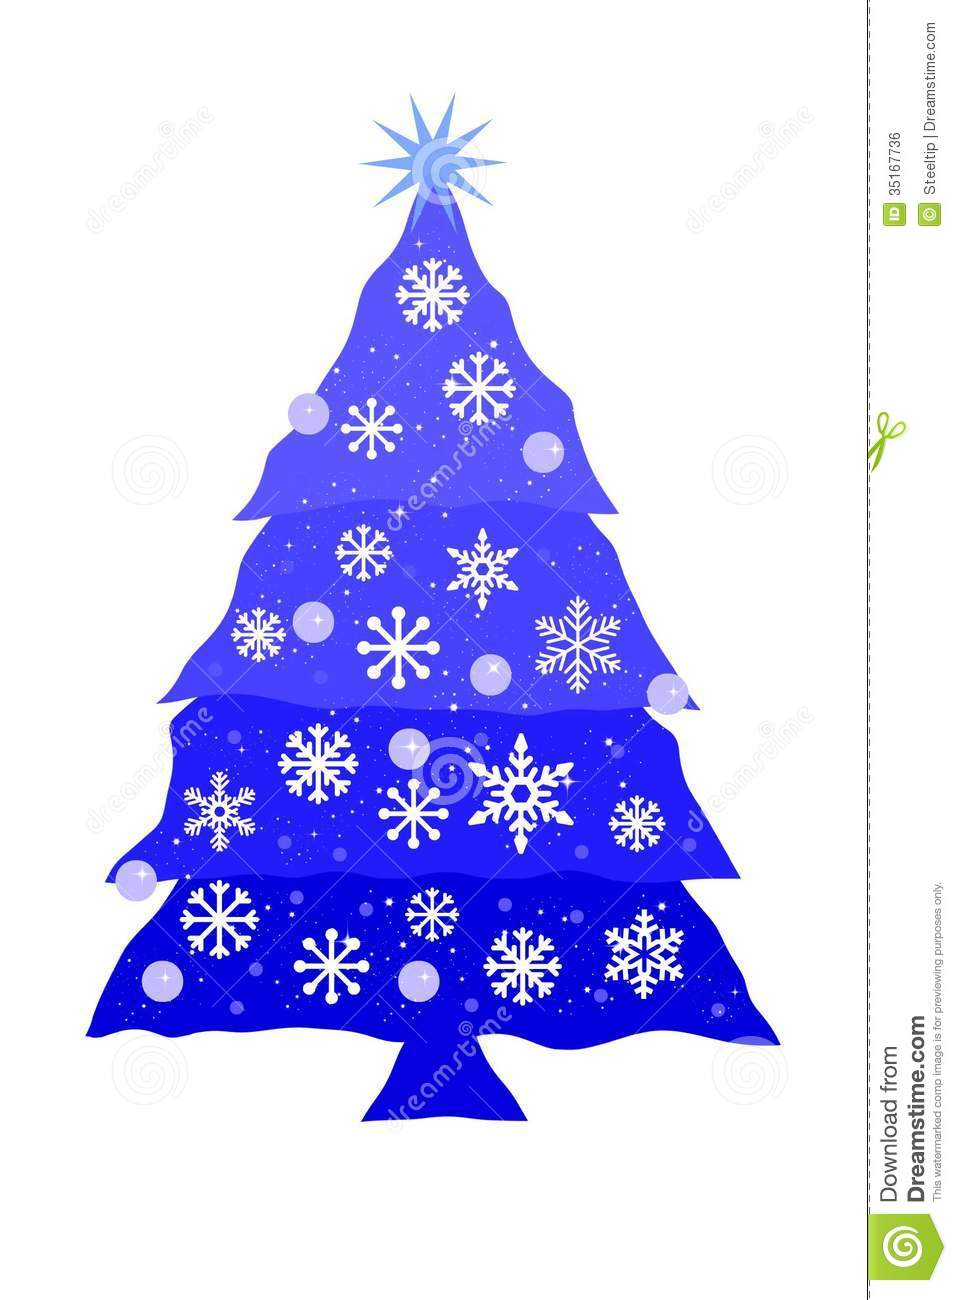 blue christmas tree - Christmas Tree Blue